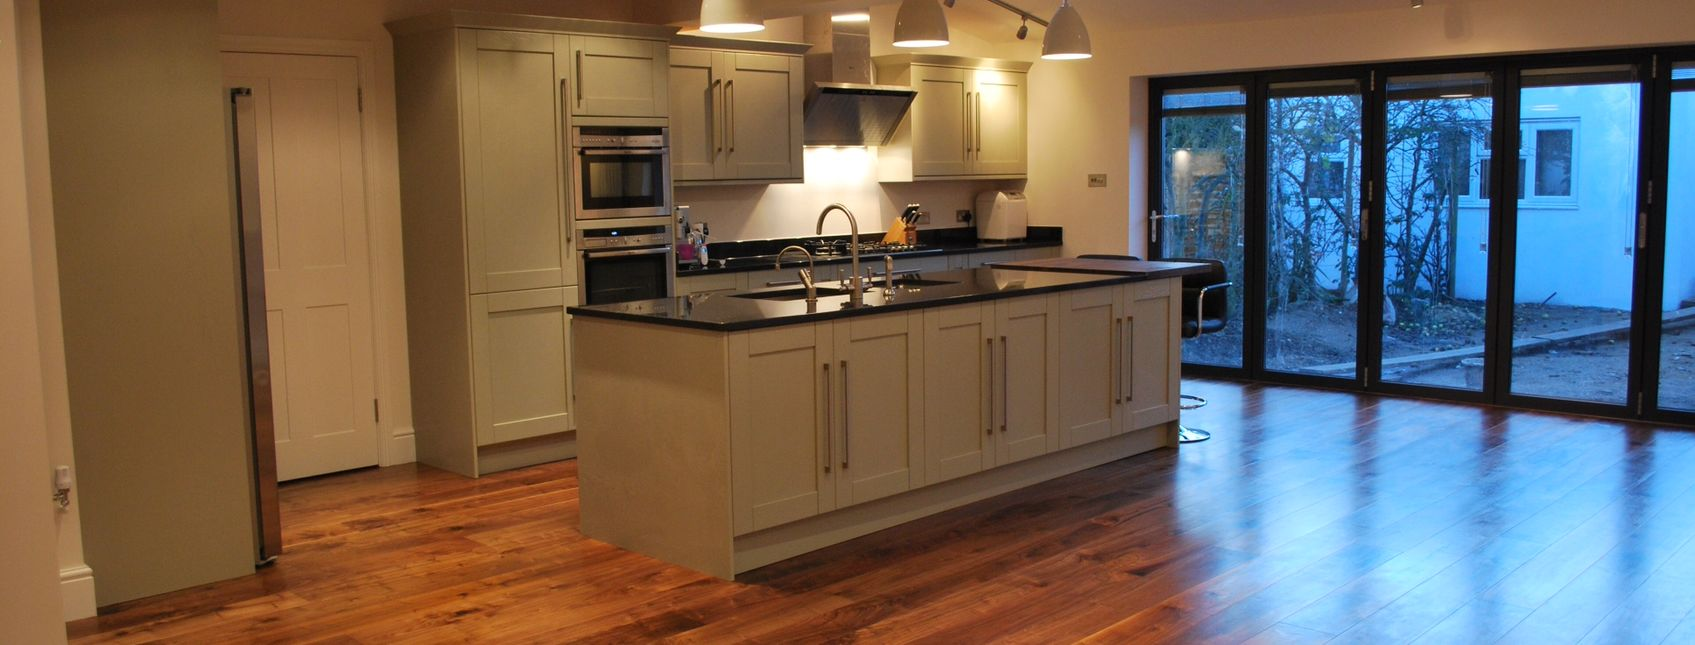 stunning open plan kitchen wood floor